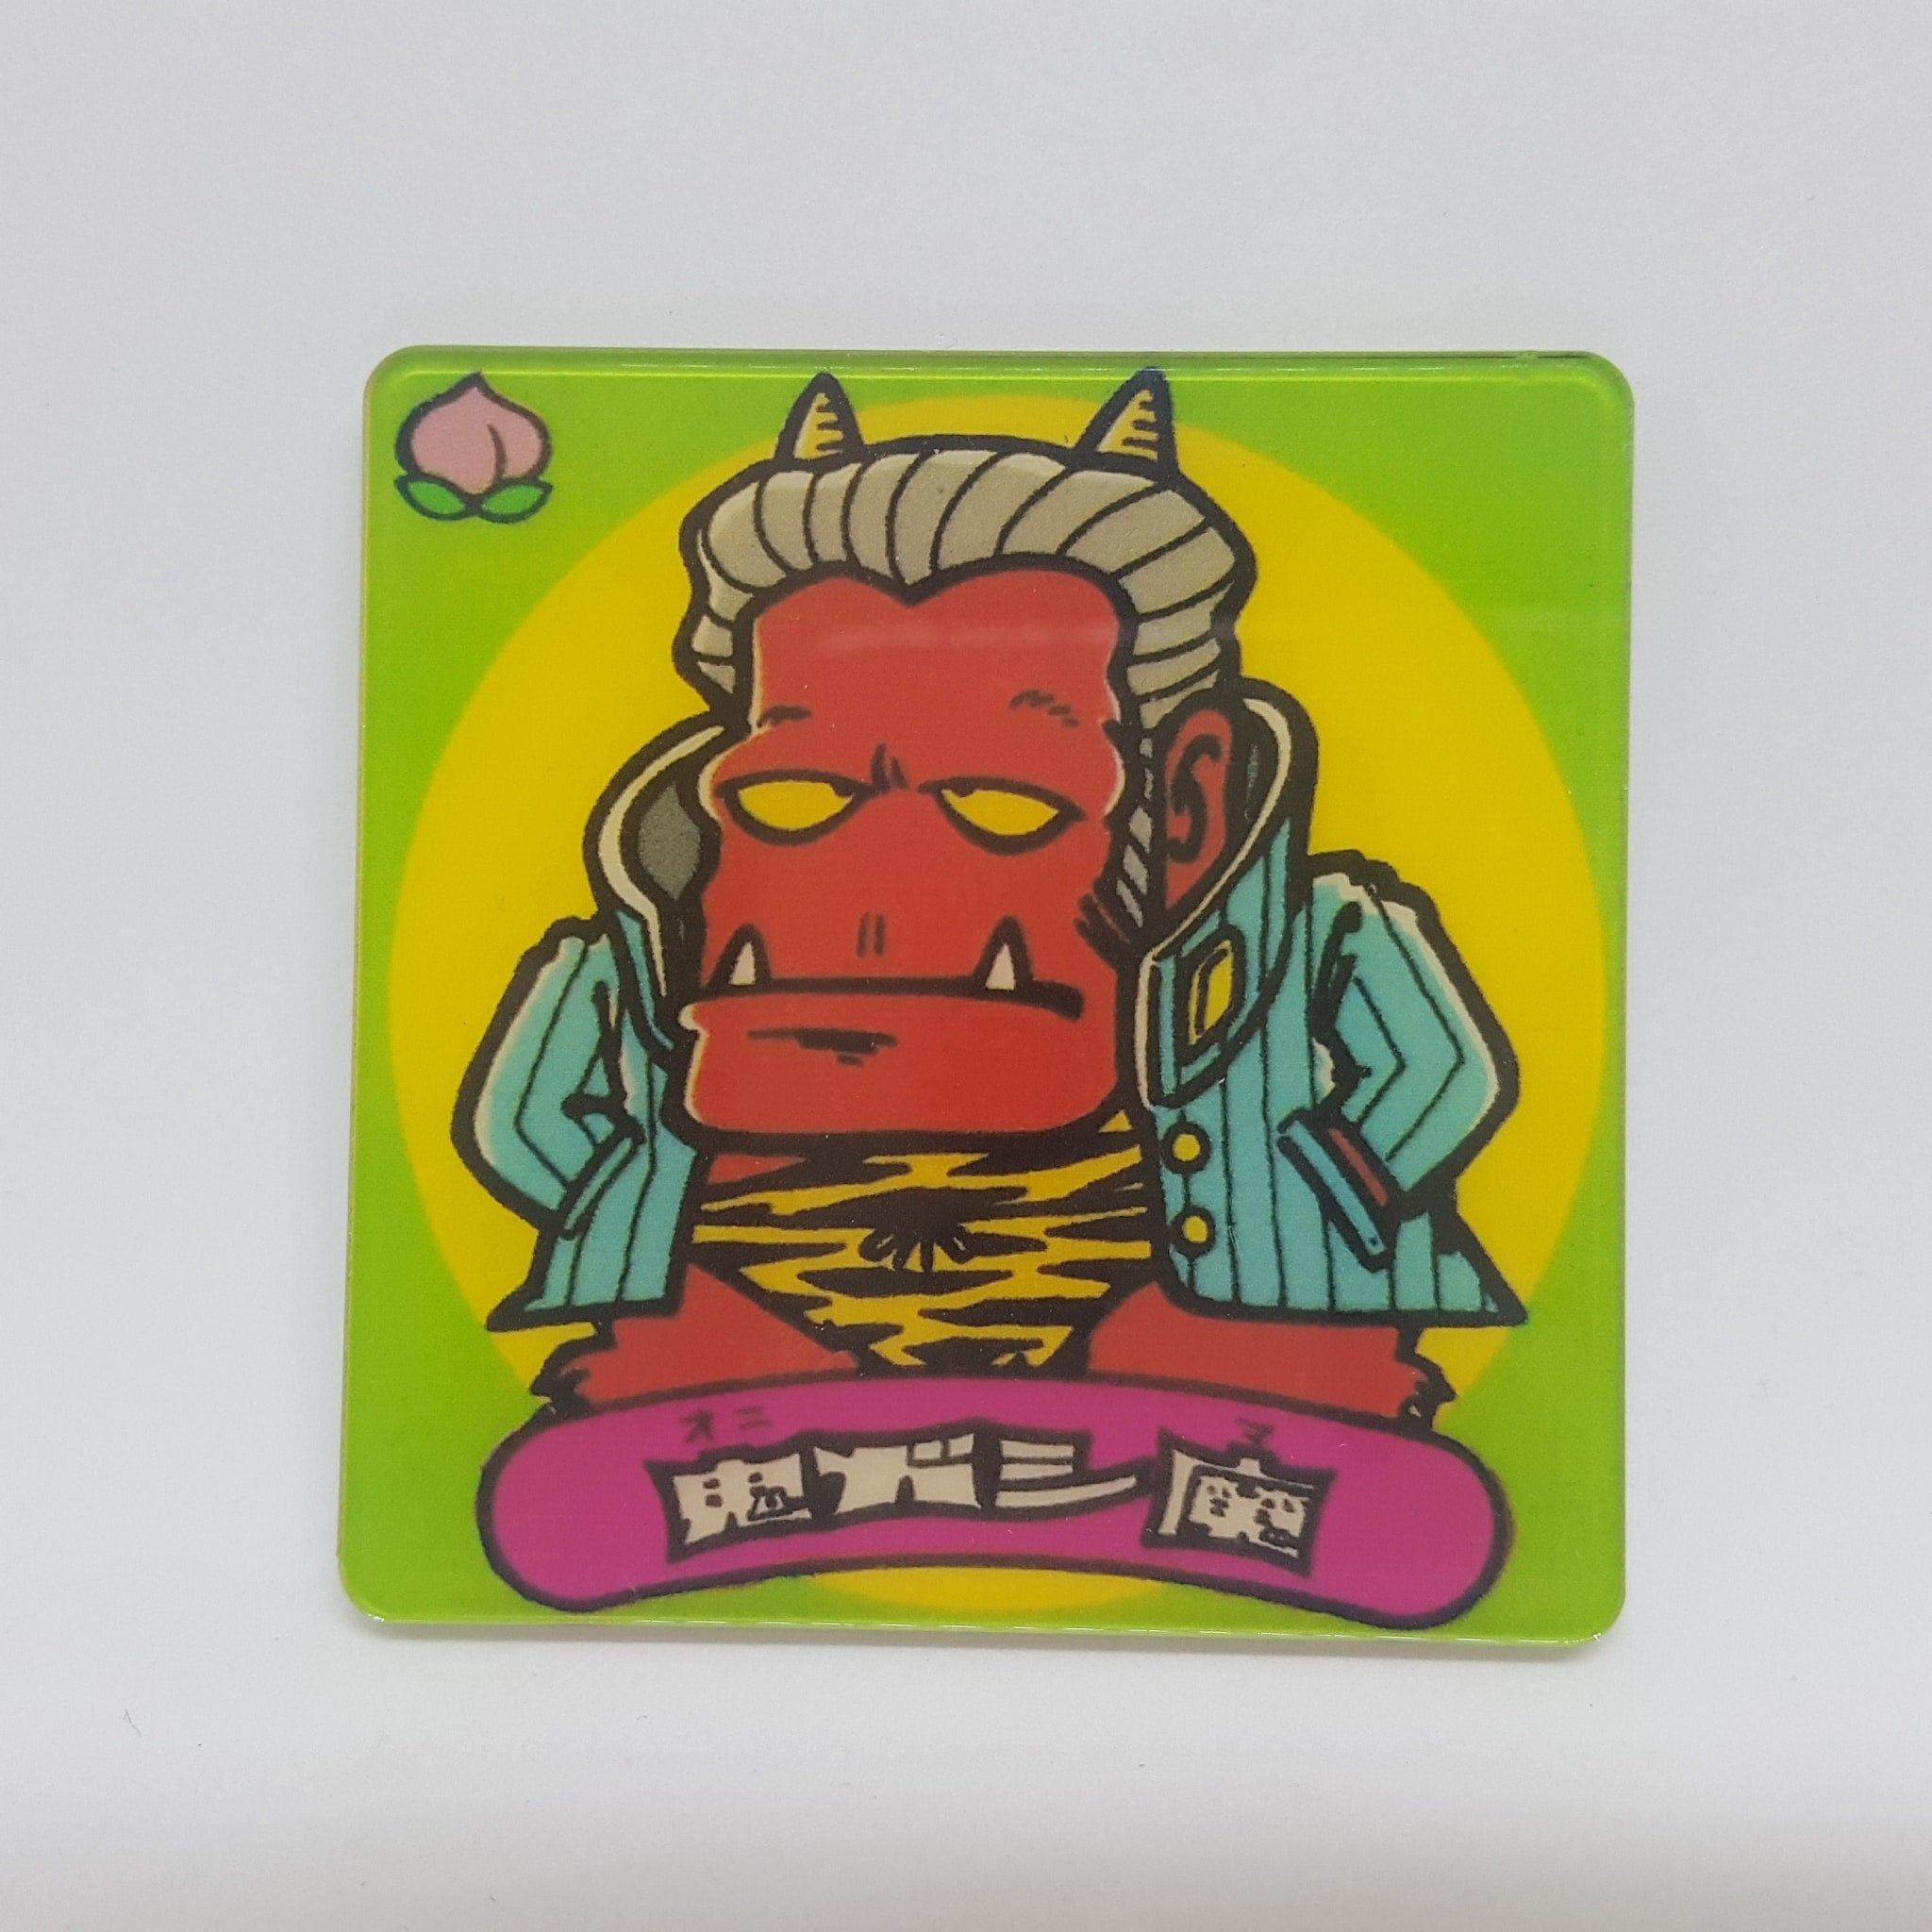 Bikkuriman Oni Gashi Ma Acrylic Pin - Pins & Patches